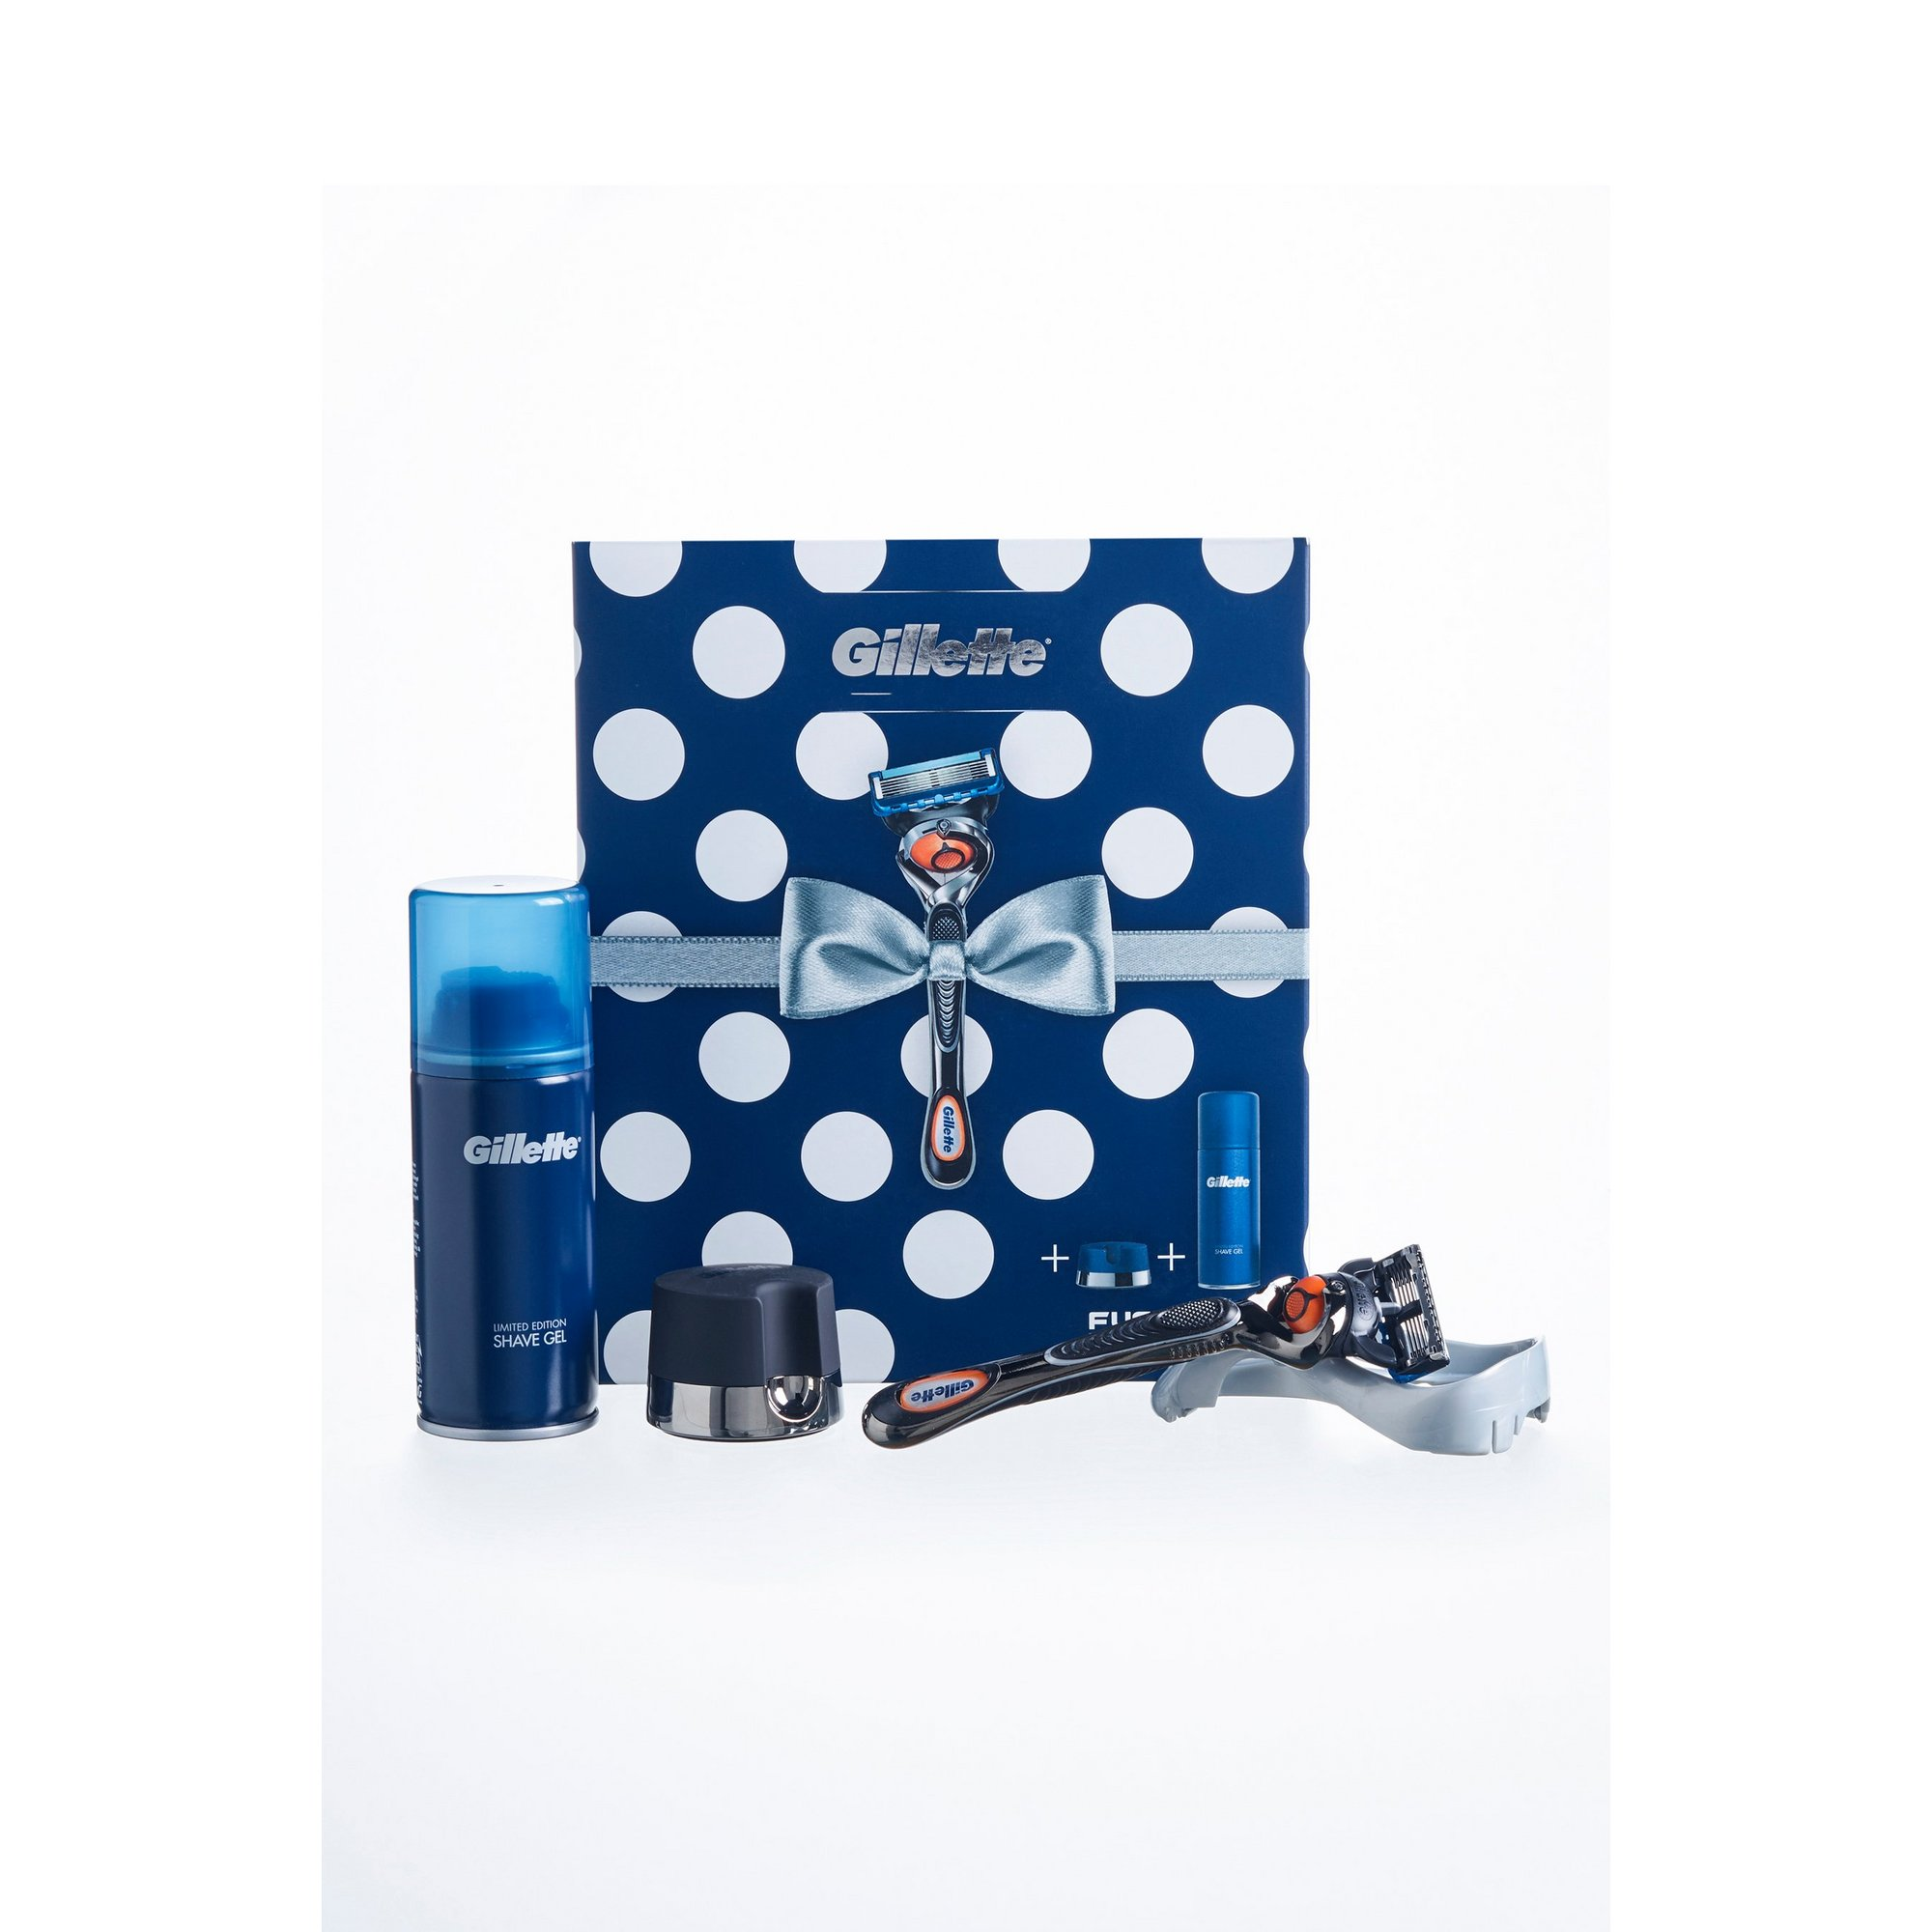 Image of Gillette Gift Set Fusion Razor for Men + Shaving Gel 75ml + Stand